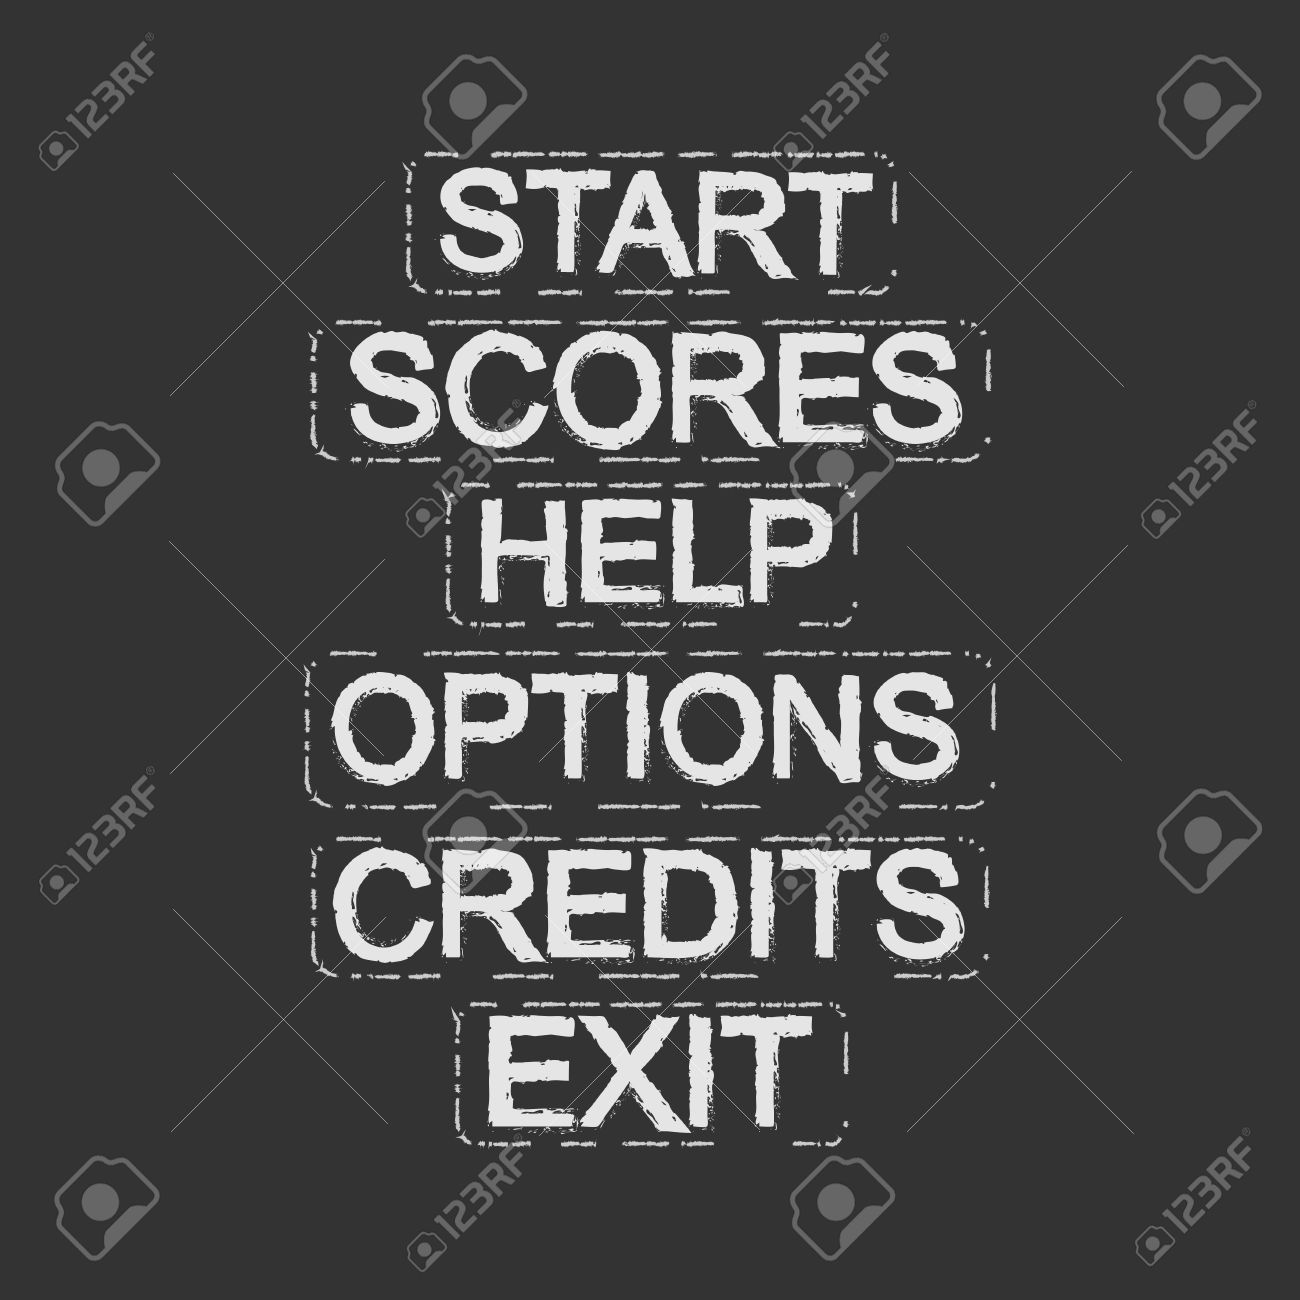 Set Of Video Game Menu Resources Buttons: Start, Scores, Help.